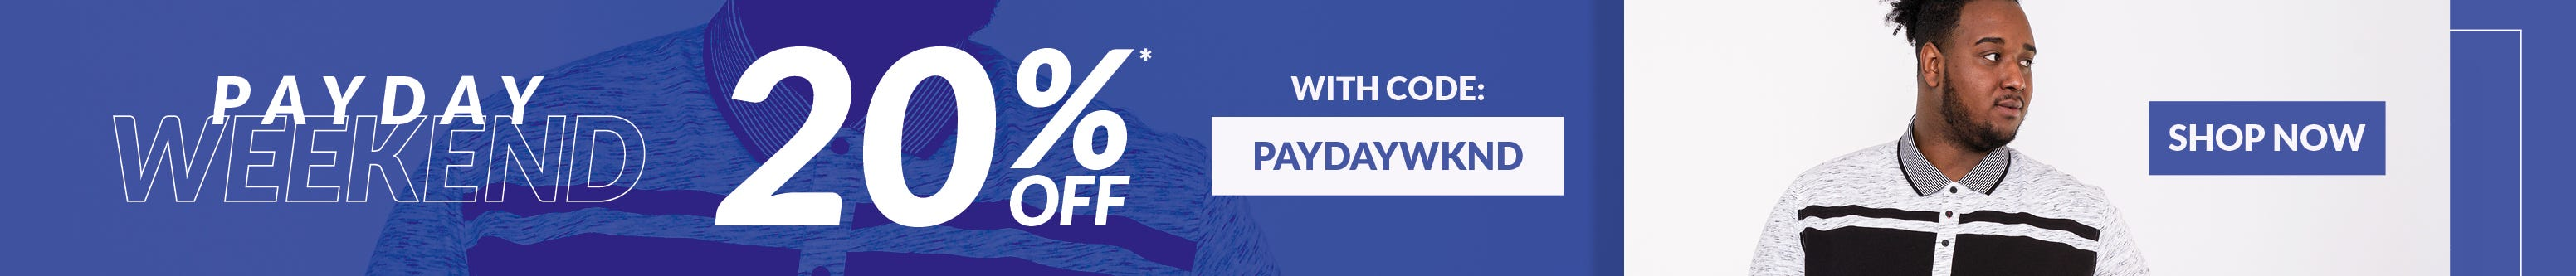 PAYDAY WEEKEND 20% OFF